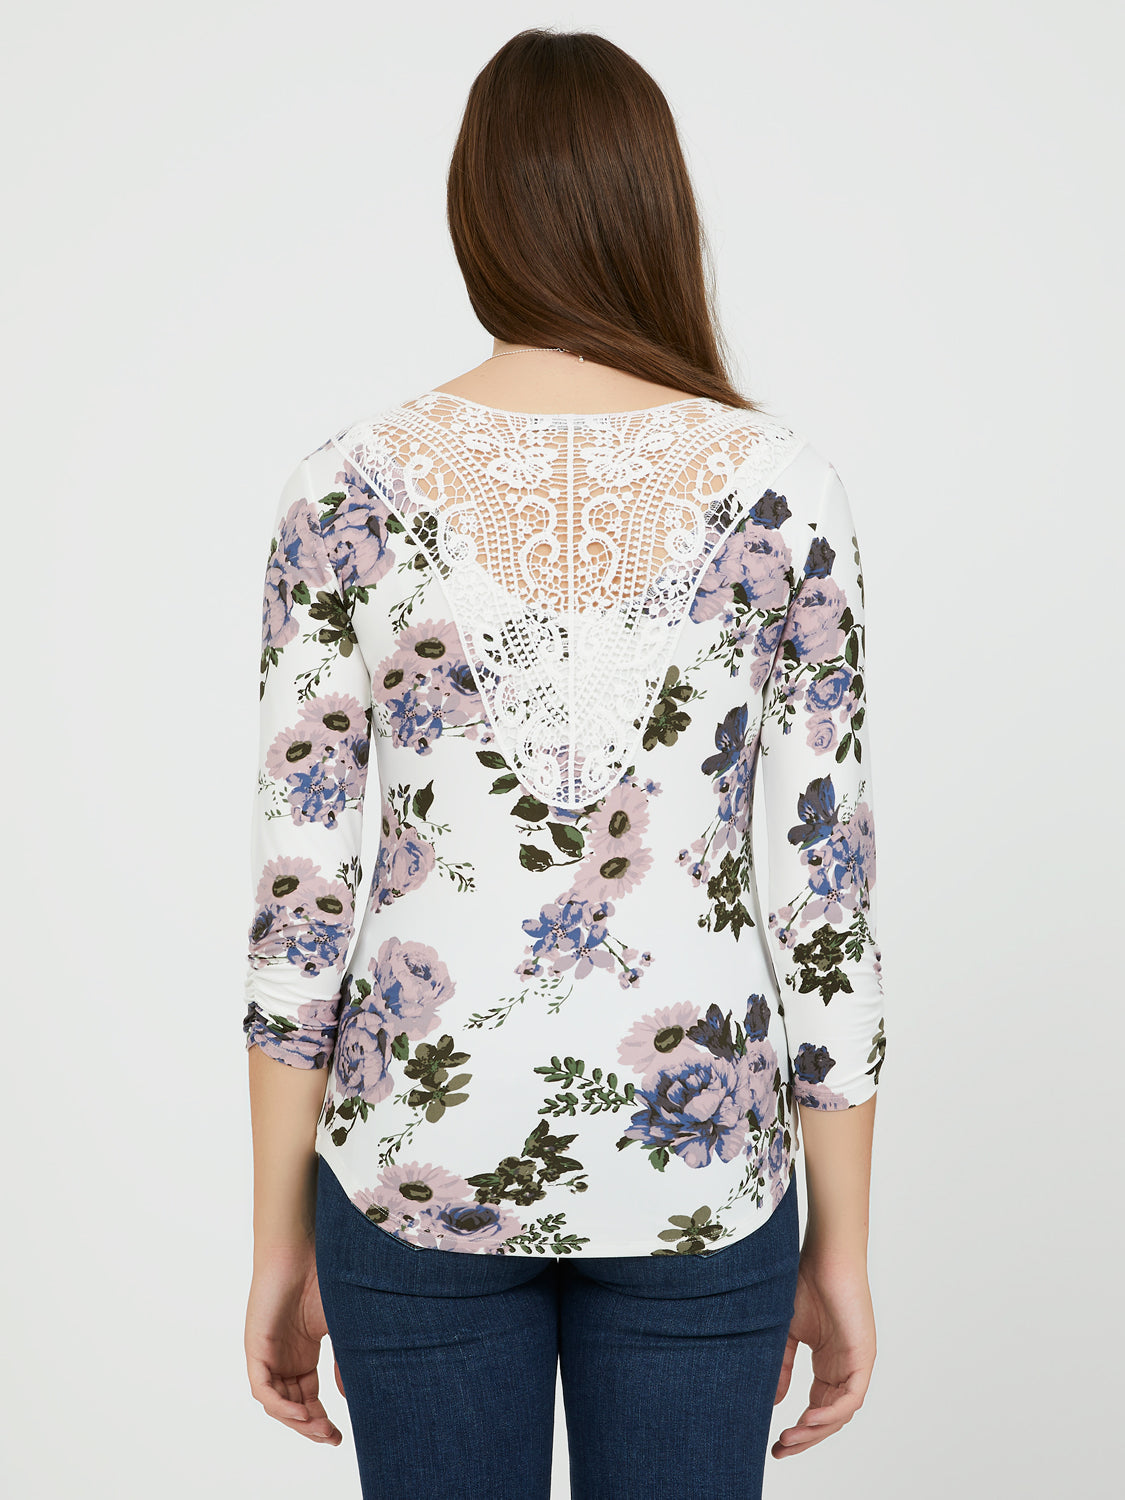 ¾ Sleeves Floral Brushed Knit Top